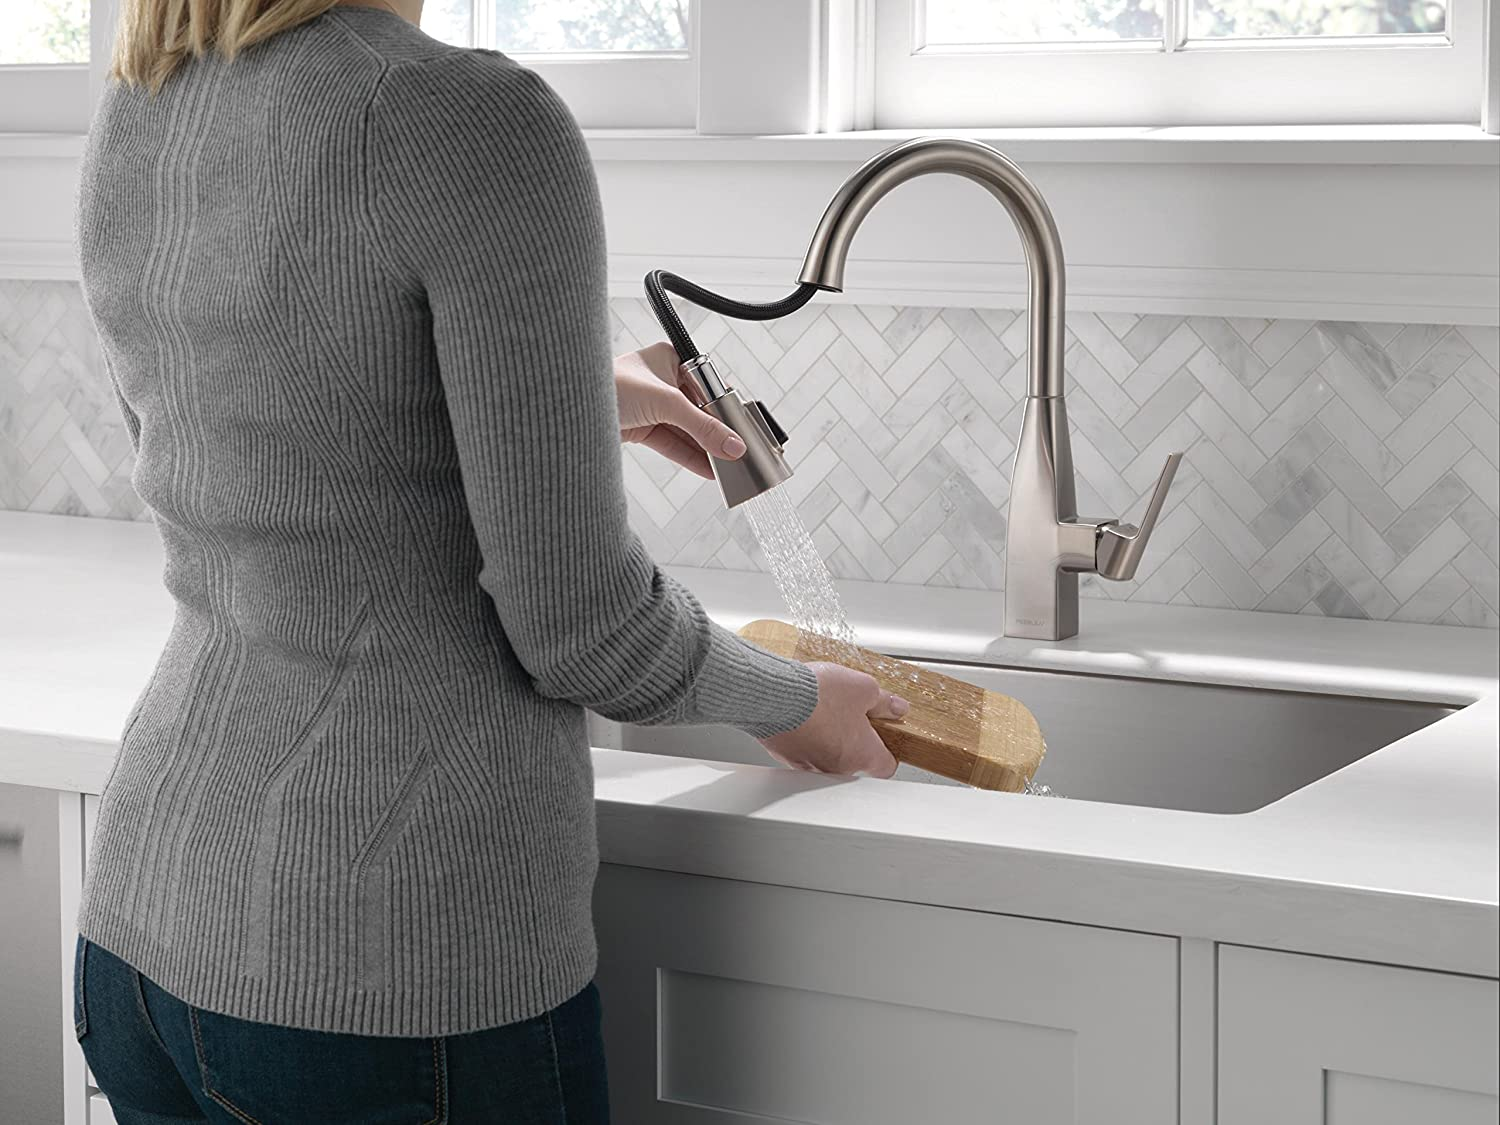 Peerless Faucet Reviews 2020 List Of Faucets That Doesn T Suck